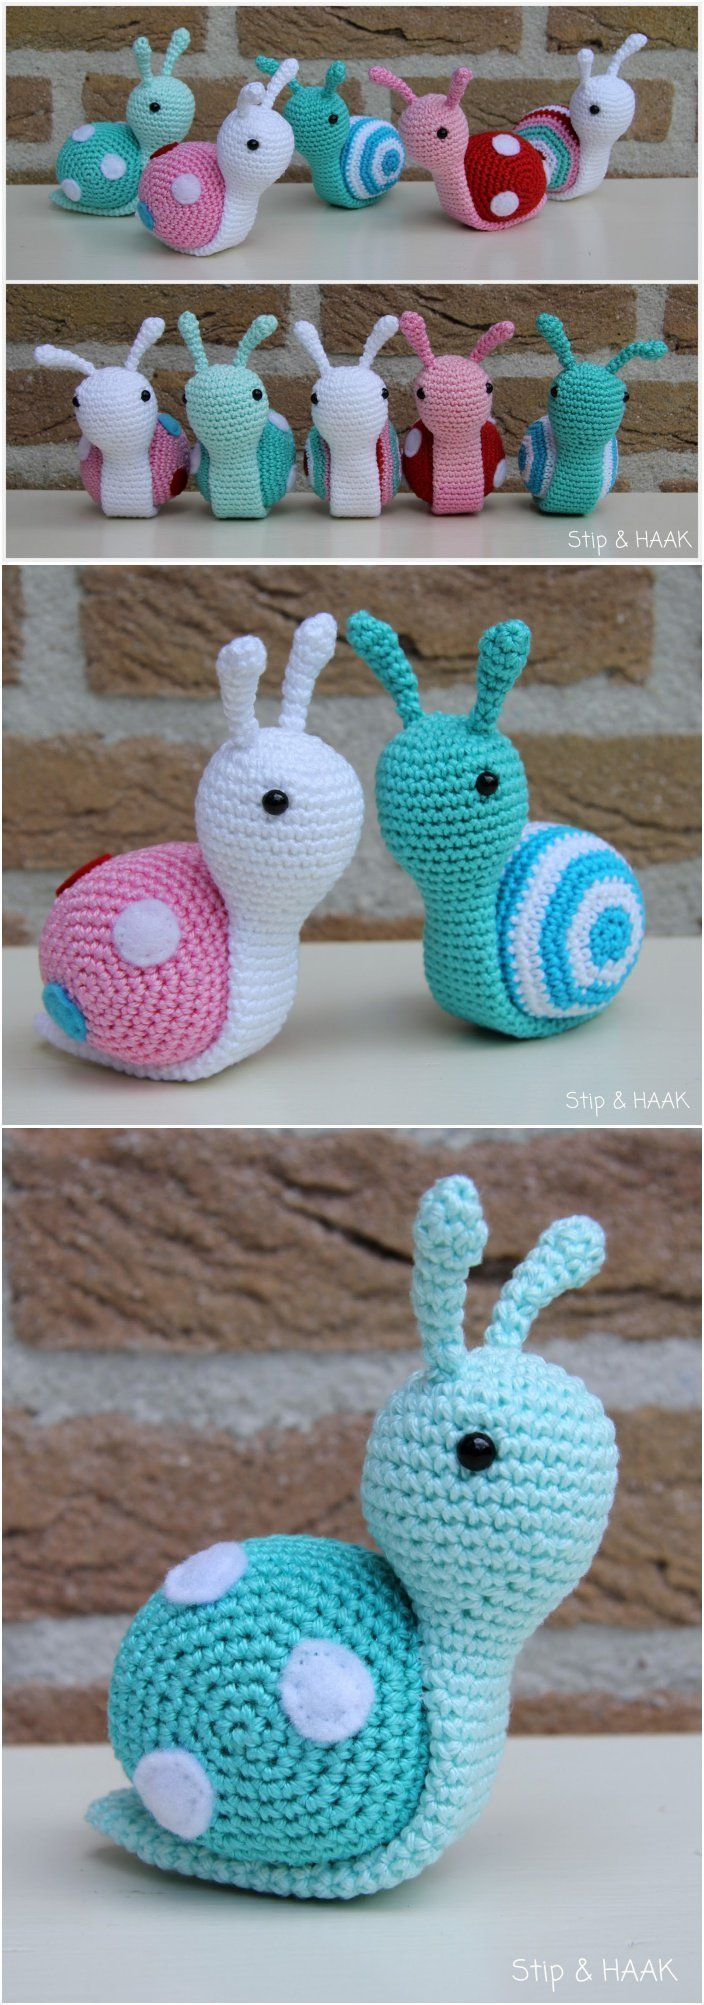 FREE CROCHET PATTERNS: Amigurumi Snails Plus Video Tutorials - Baby to Boomer Lifestyle